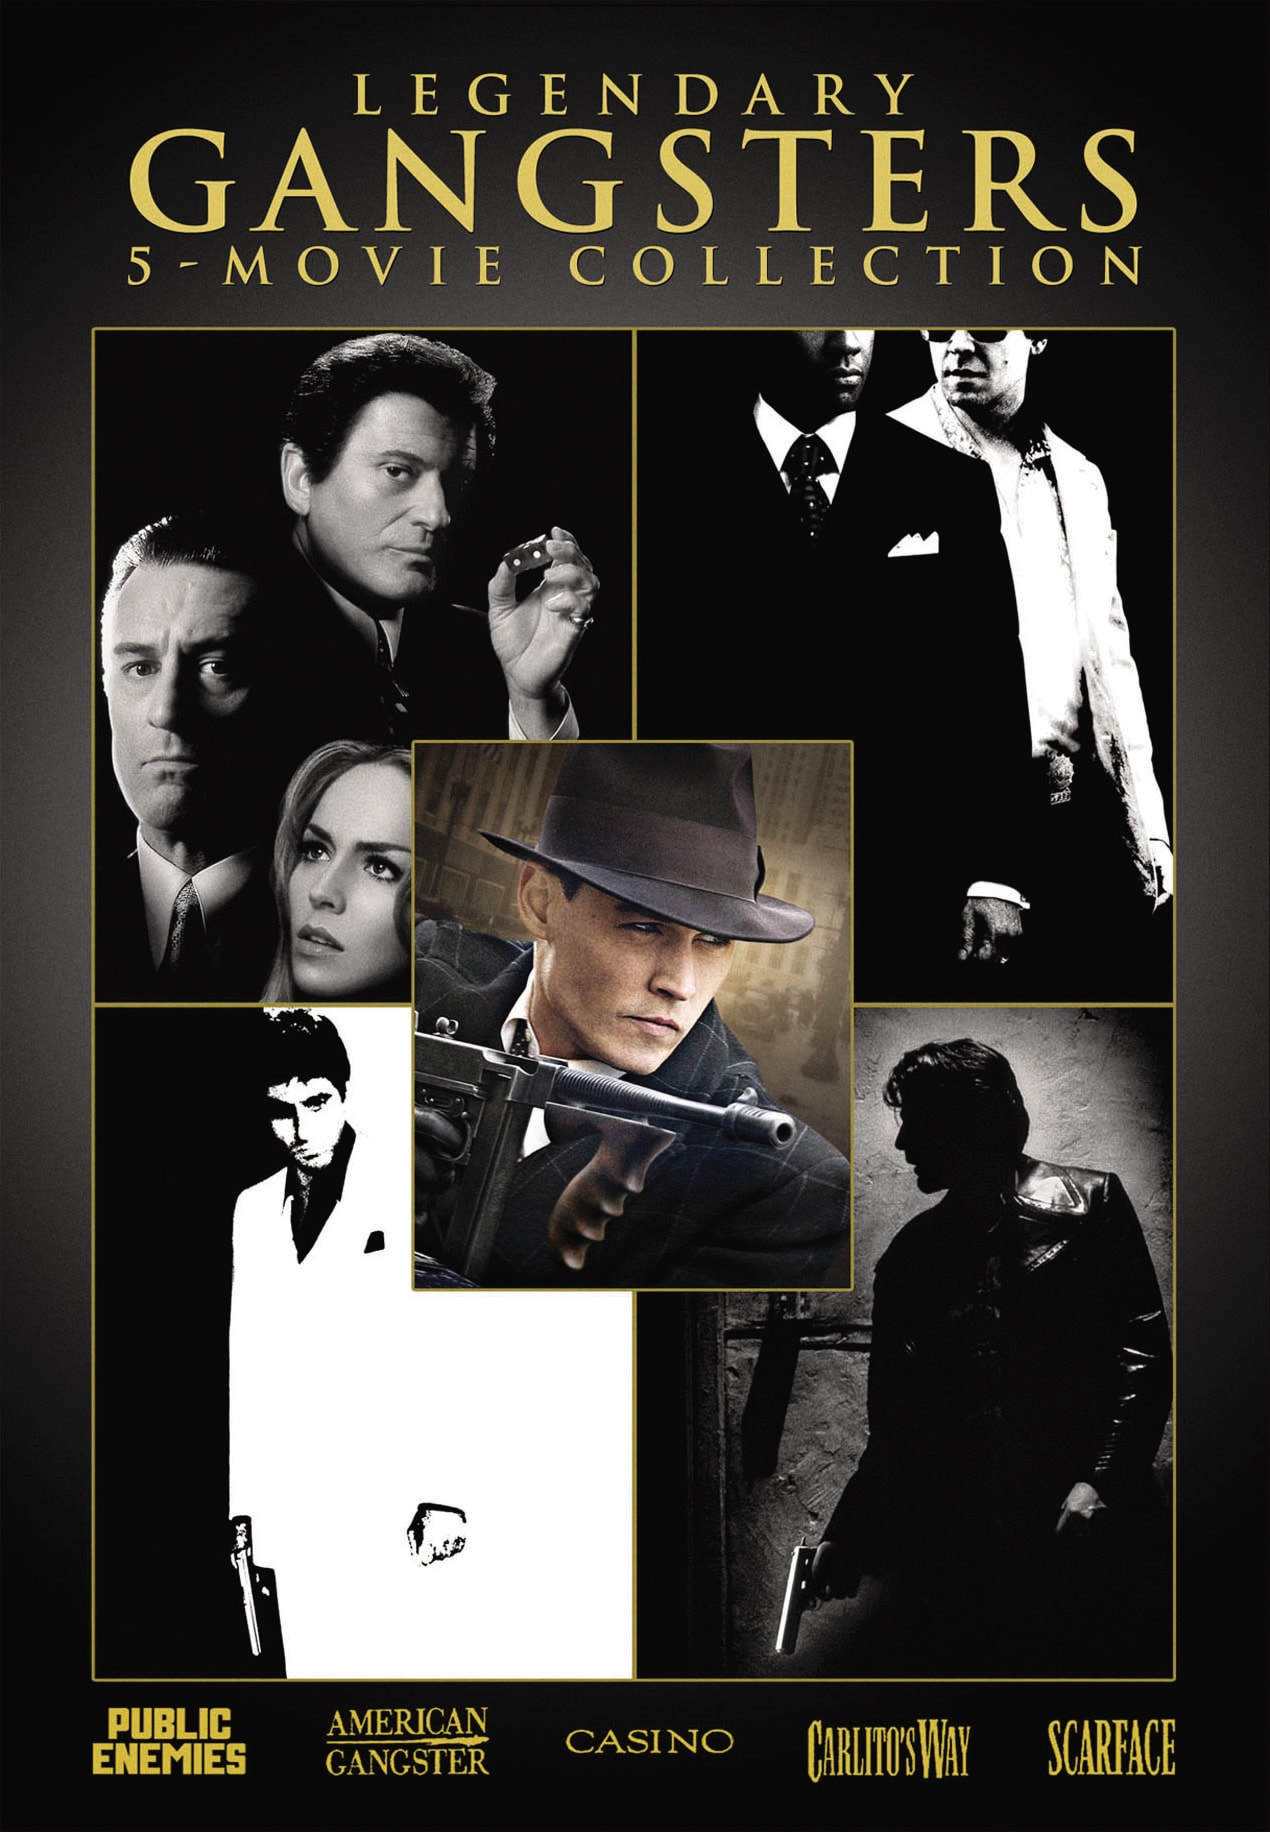 Legendary Gangsters: 5-Movie Collection (2009) [DVD]